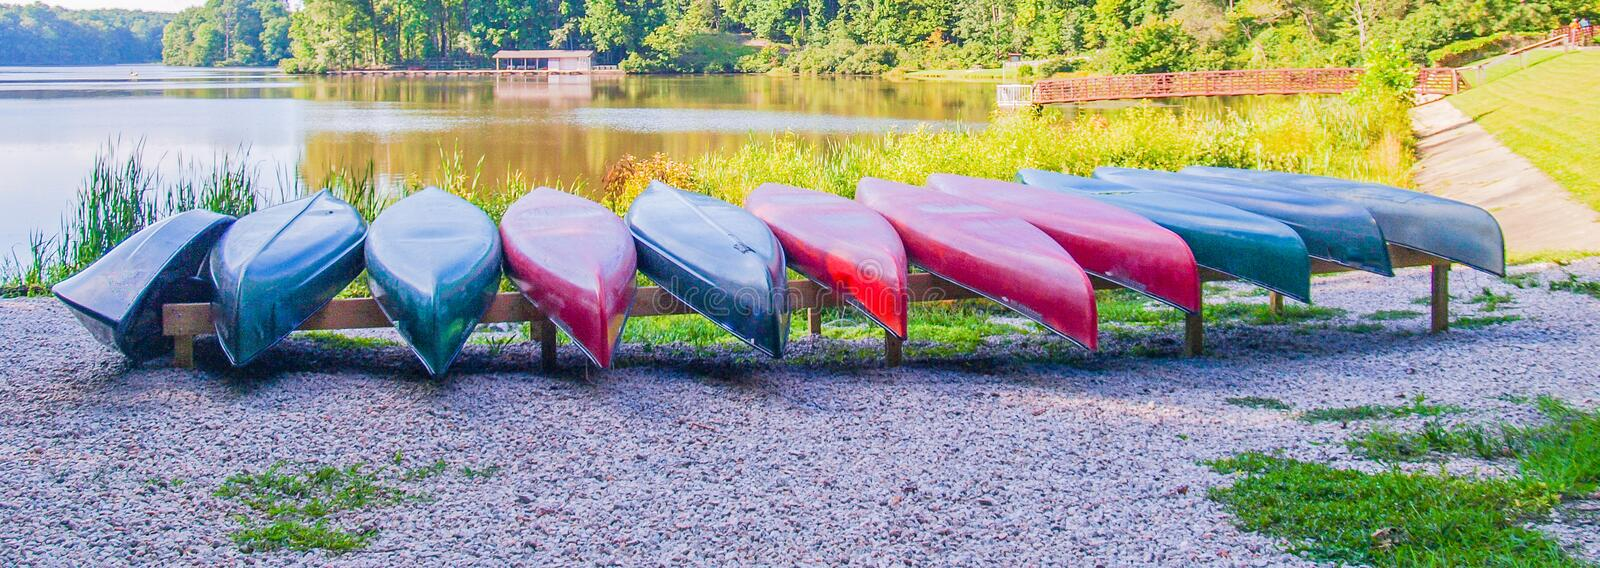 Row of Canoes at Big Lake. Canoes are put away at the end of the day and ready for the next trip on Big Lake at Umstead State Park stock photography